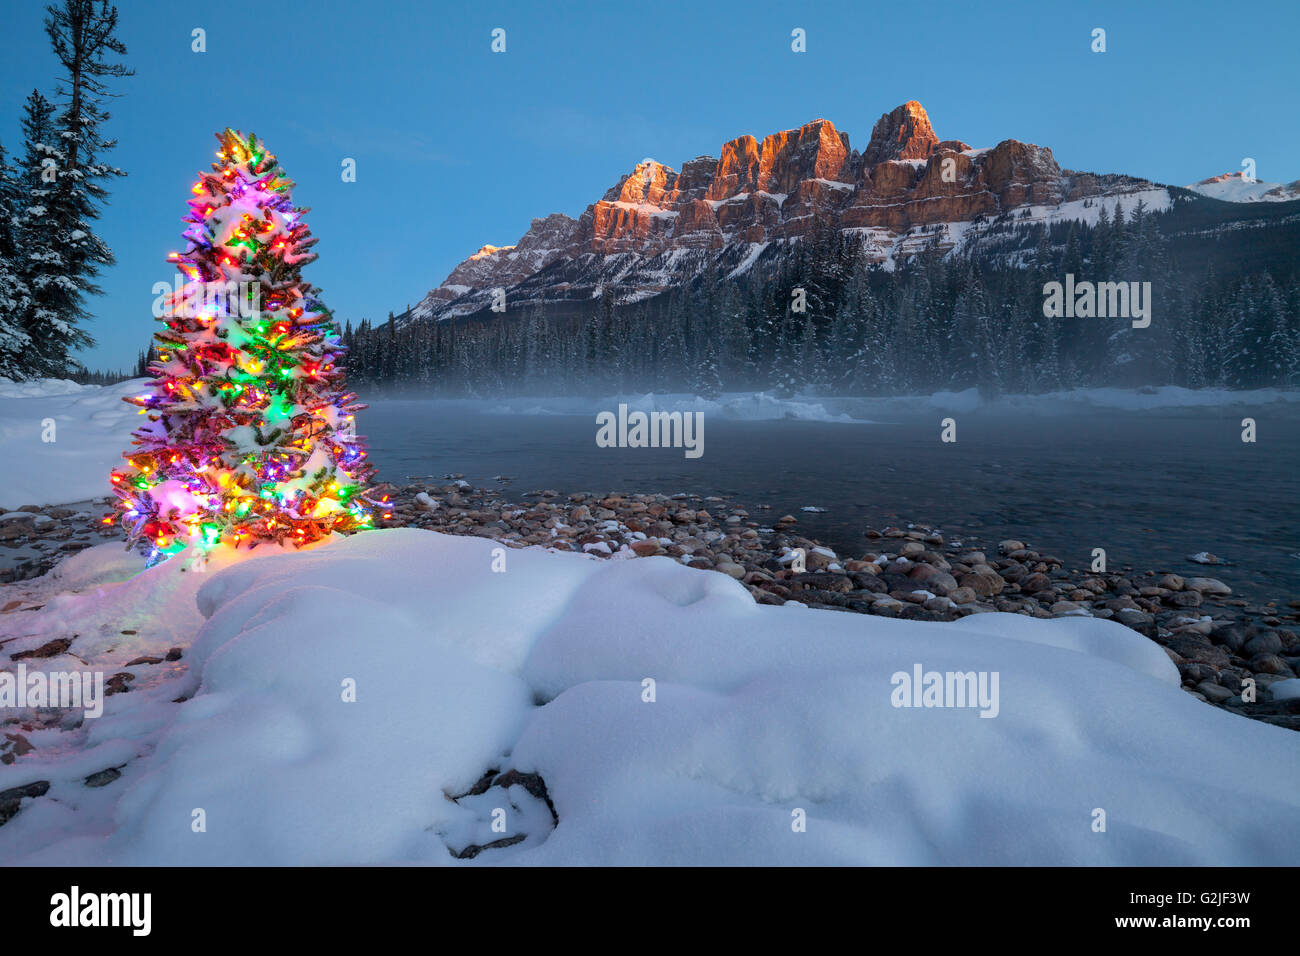 Mountain Christmas Tree.Christmas Tree Castle Mountain And The Bow River In Winter